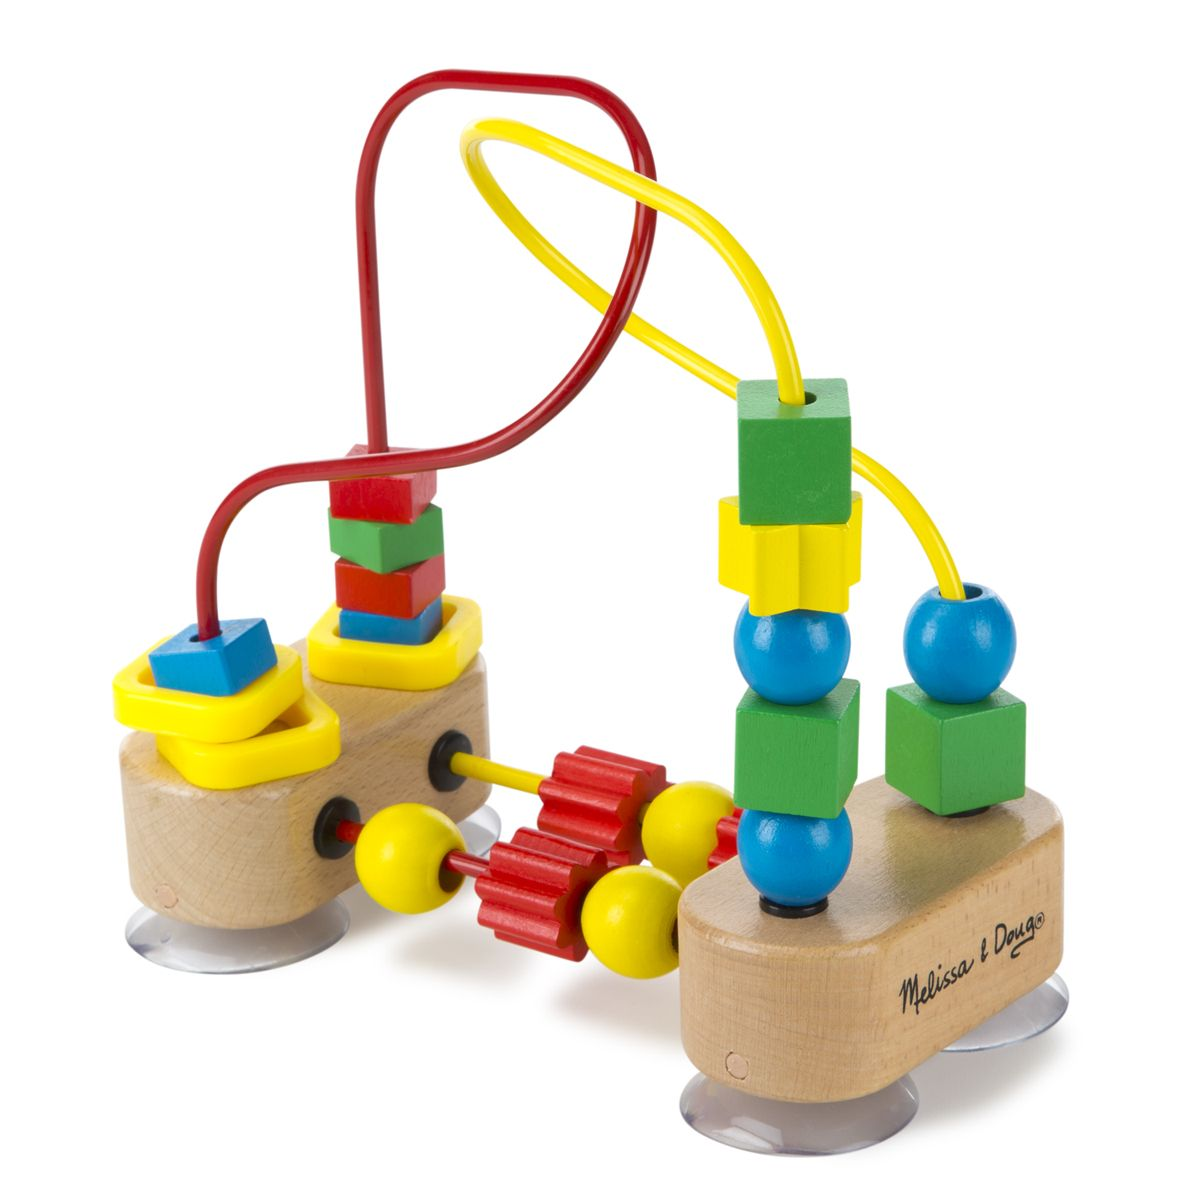 First Bead Maze : Sitting in a high chair is much more fun with this fantastic bead maze.  Featuring brightly colored, multi-shaped beads that spin and slide along red and yellow wire pathways that are anchored by a strong suction cup base.  Encourages color recognition, hand-eye coordination and fine motor development through play!